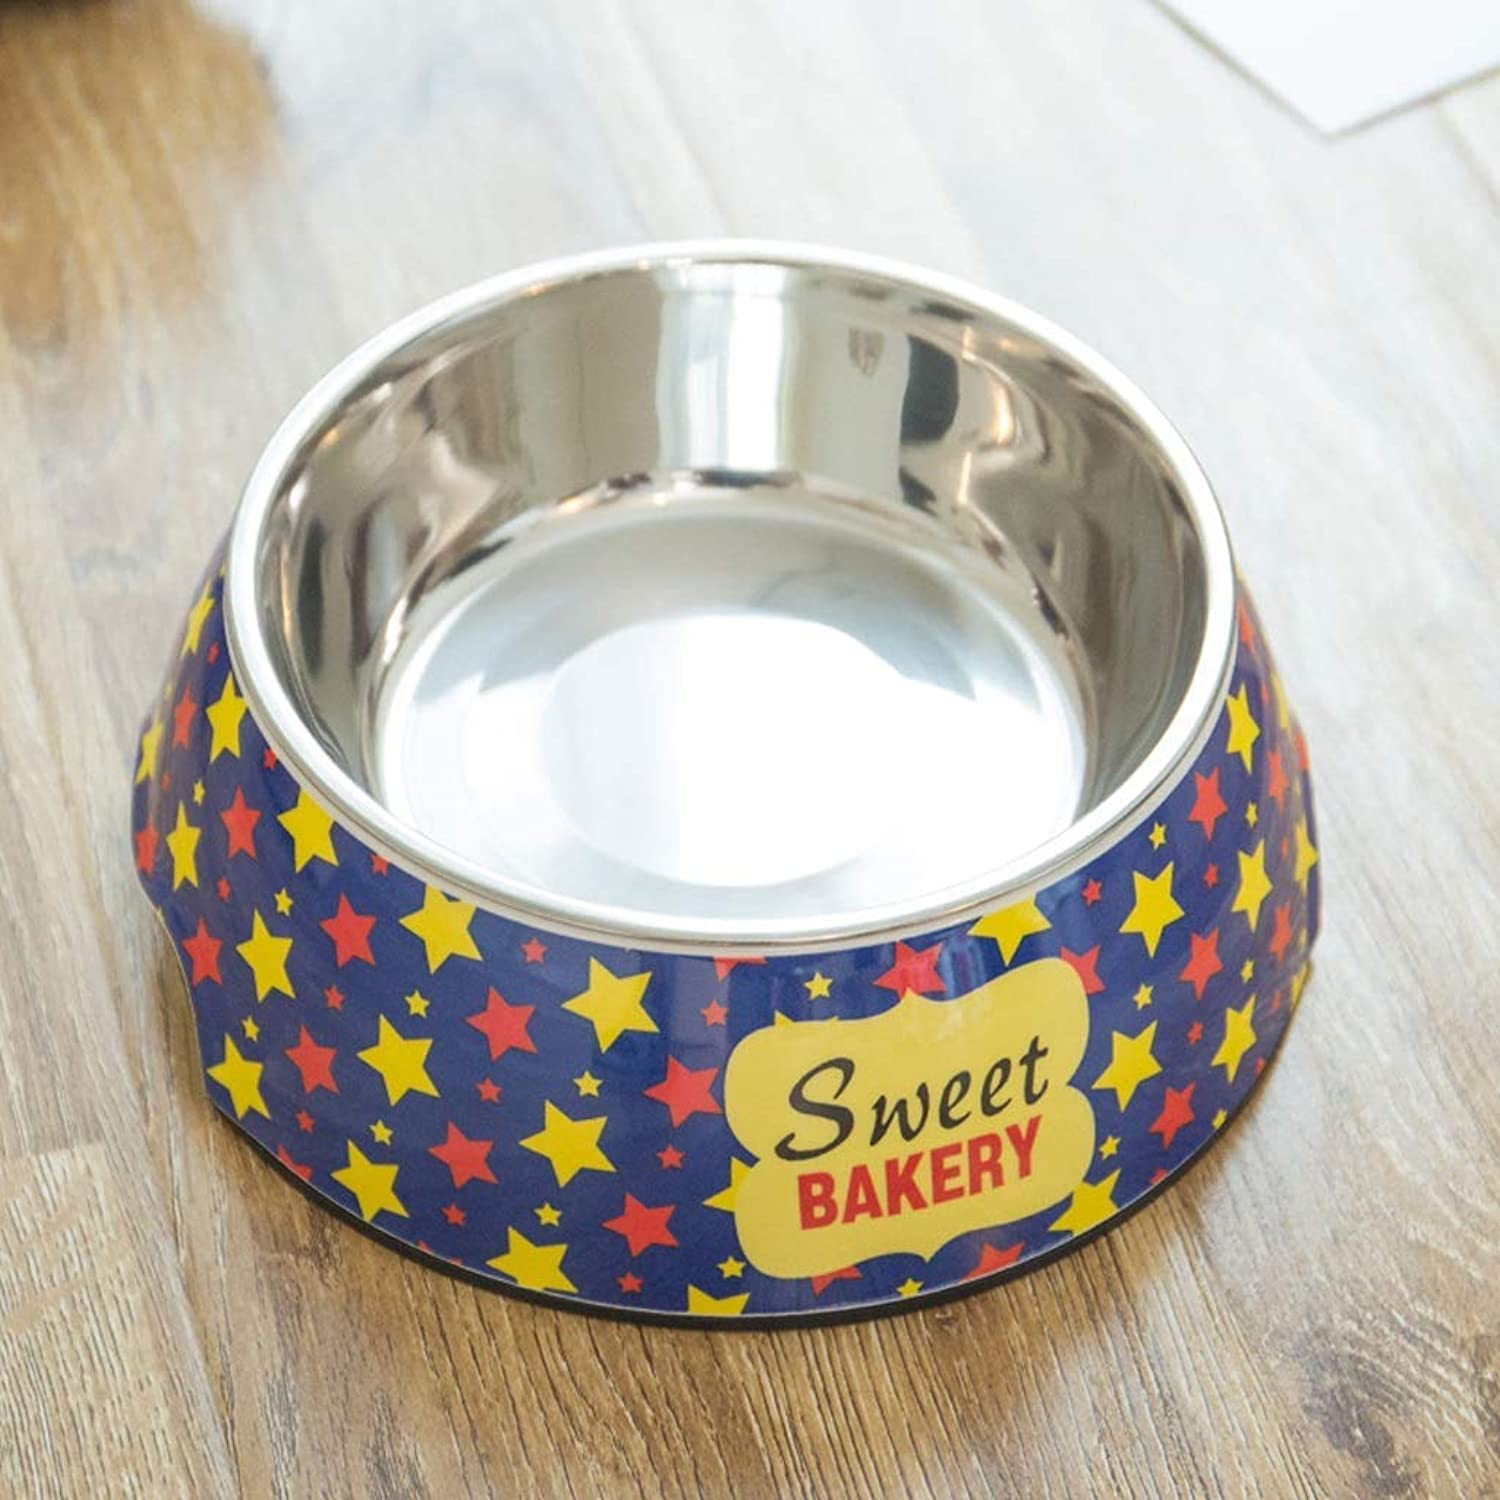 ANDRE HOME Dog Food Bowl Stainless Steel NonSlip Double Layer Single Bowl Cat Bowl bluee Pet Supplies